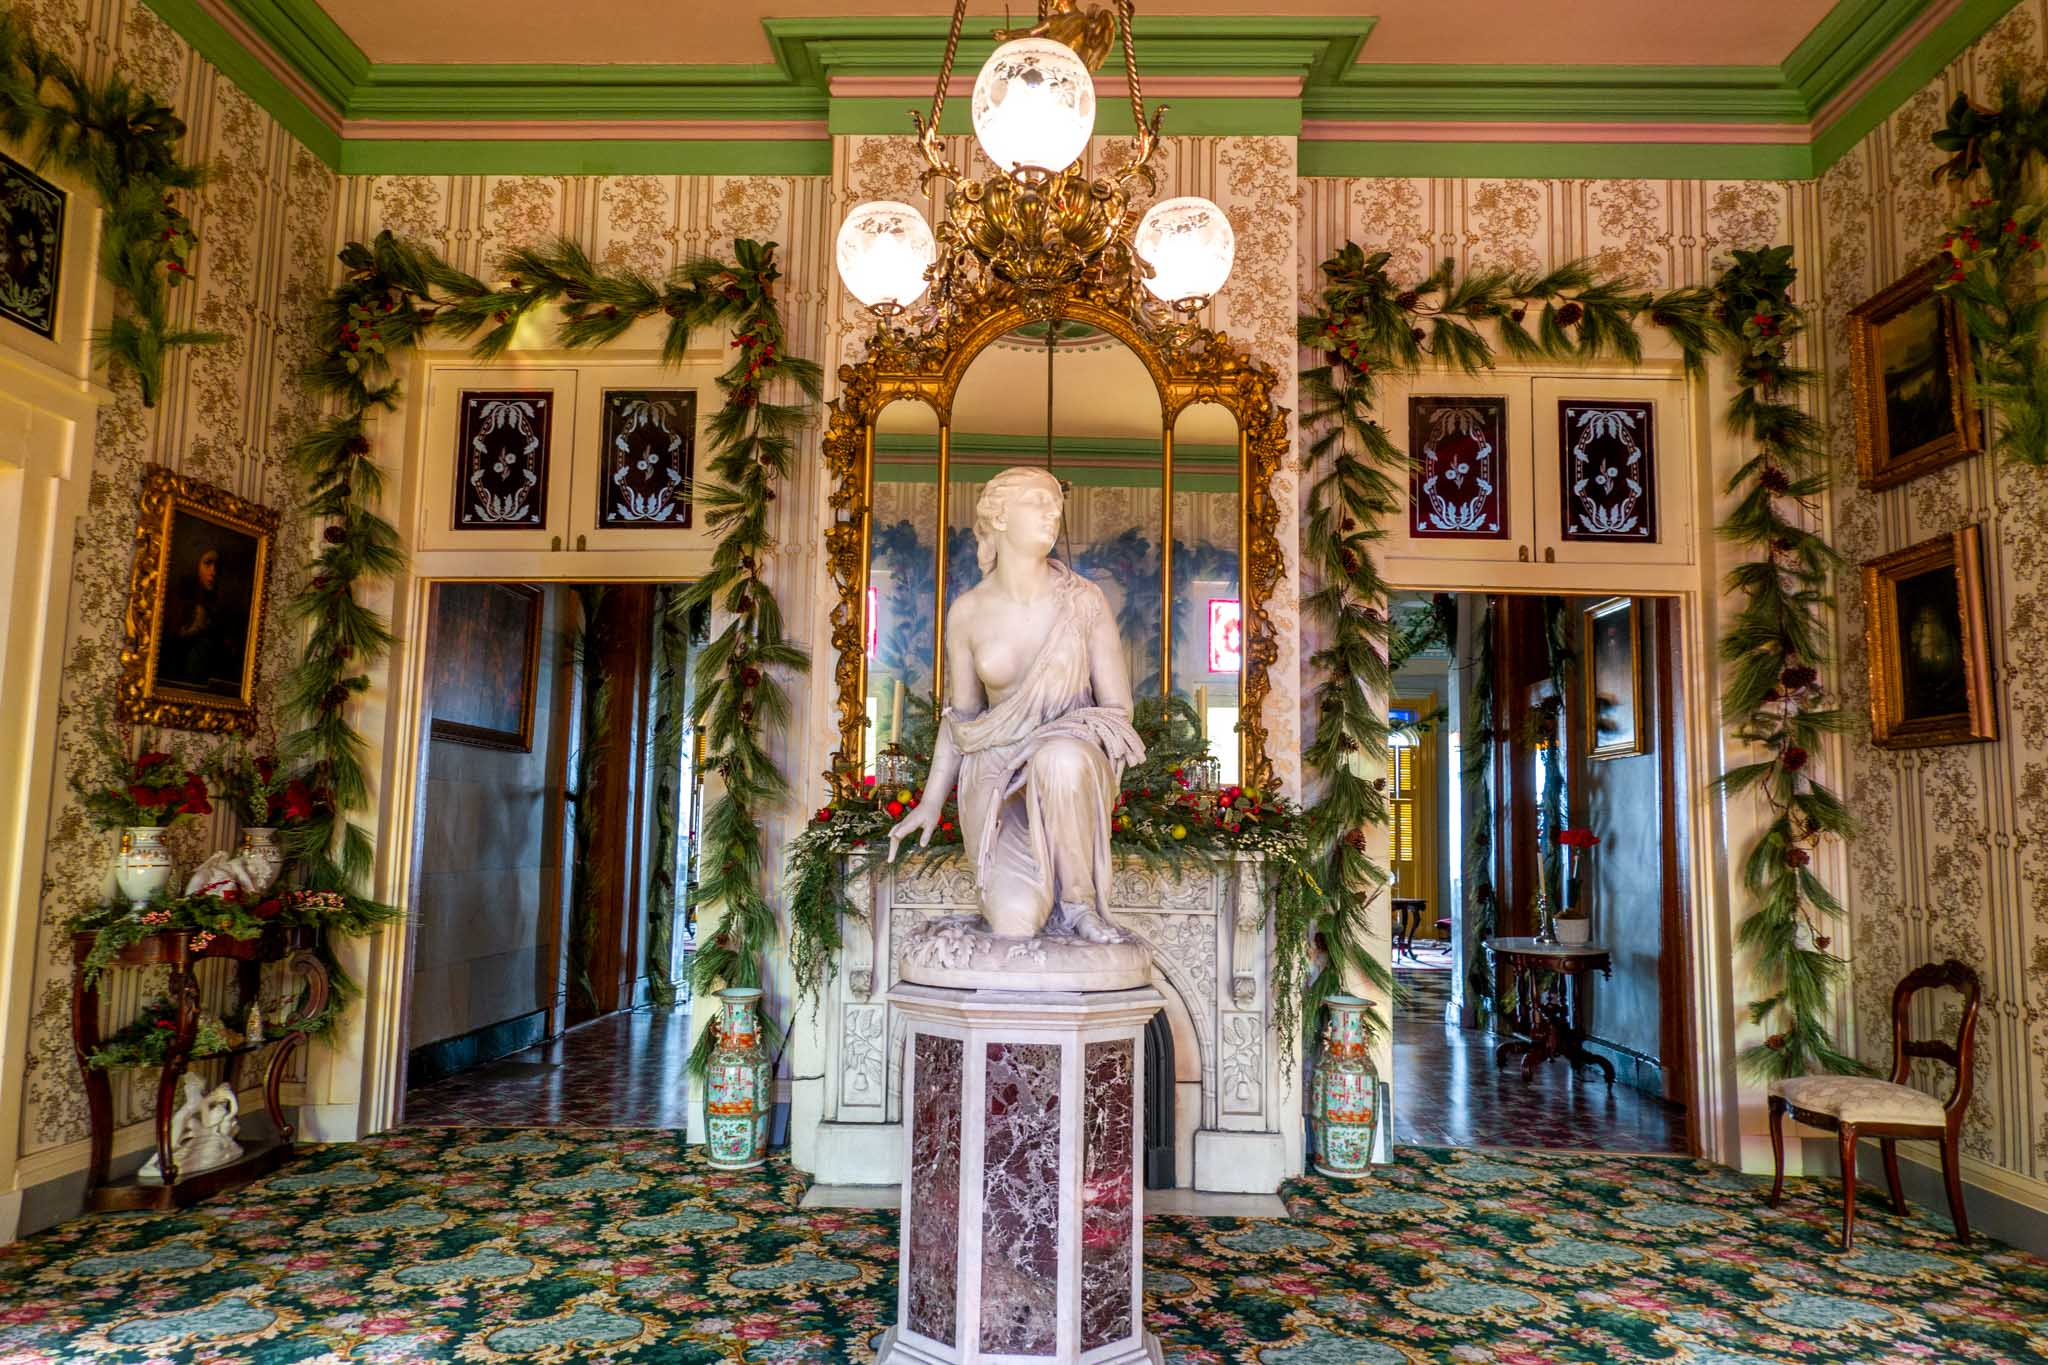 Ruth Gleaning, marble statue in the entryway at Belmont Mansion